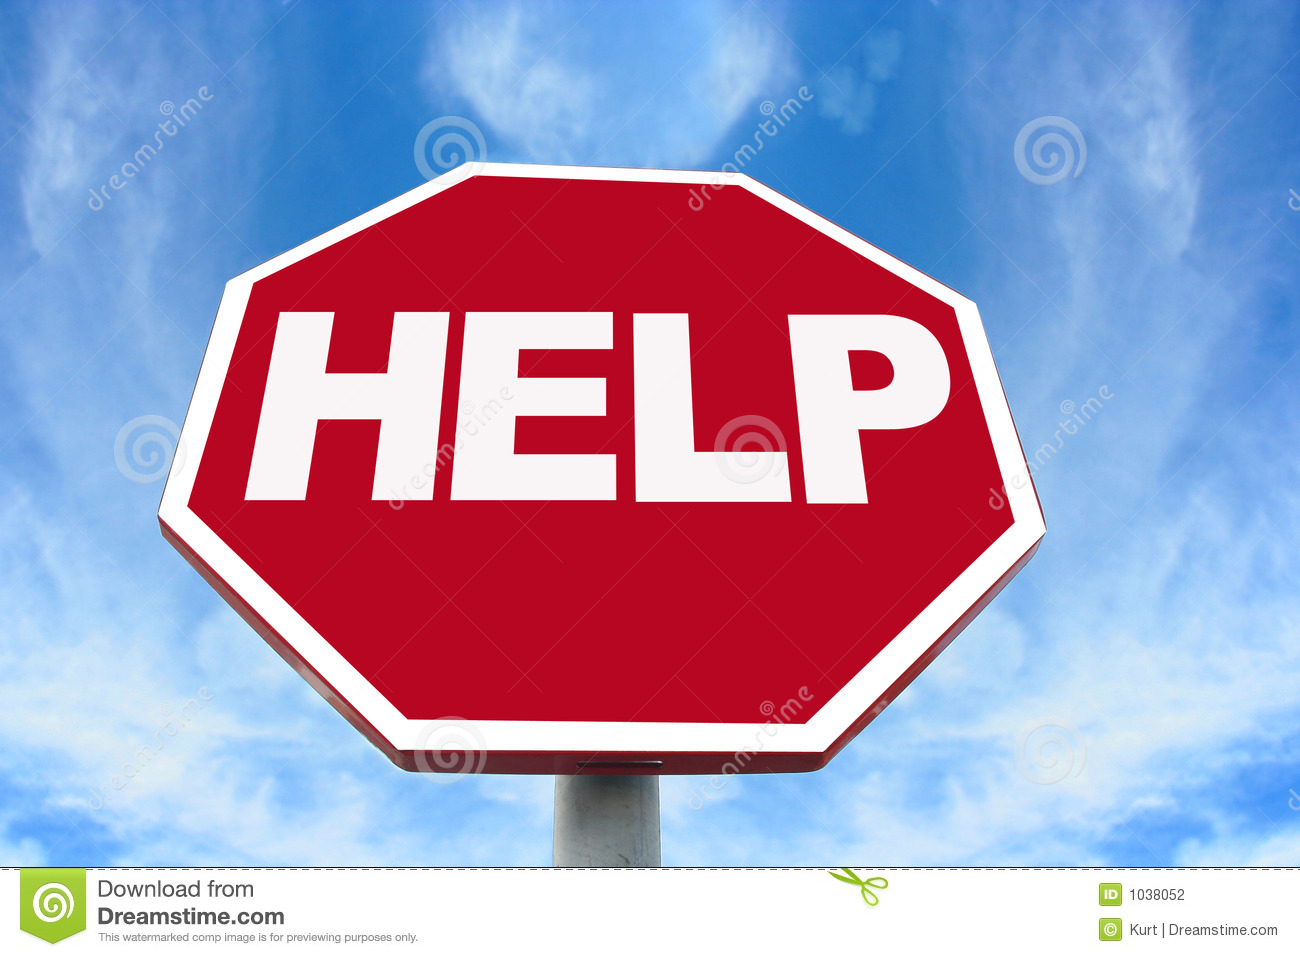 help sign stock photography image 1038052